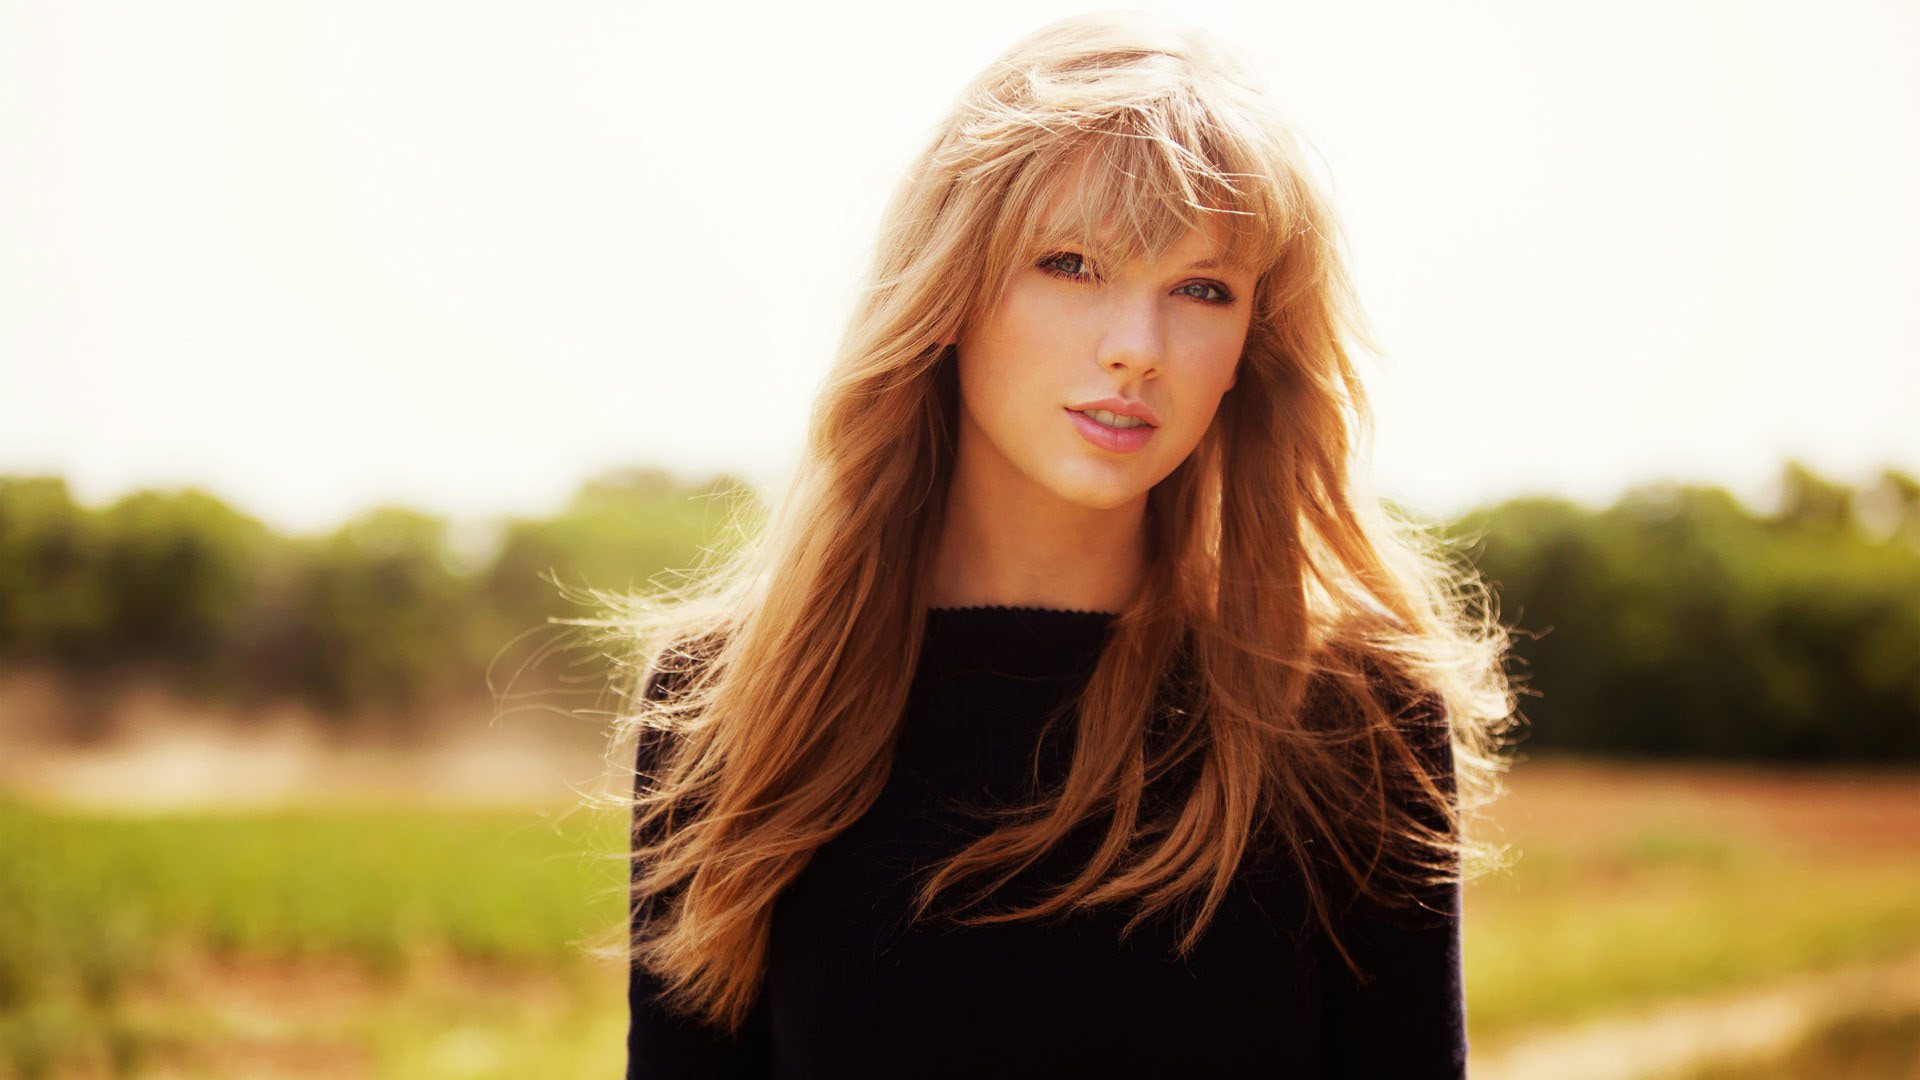 Taylor Swift 2018 Wallpapers ·① WallpaperTag